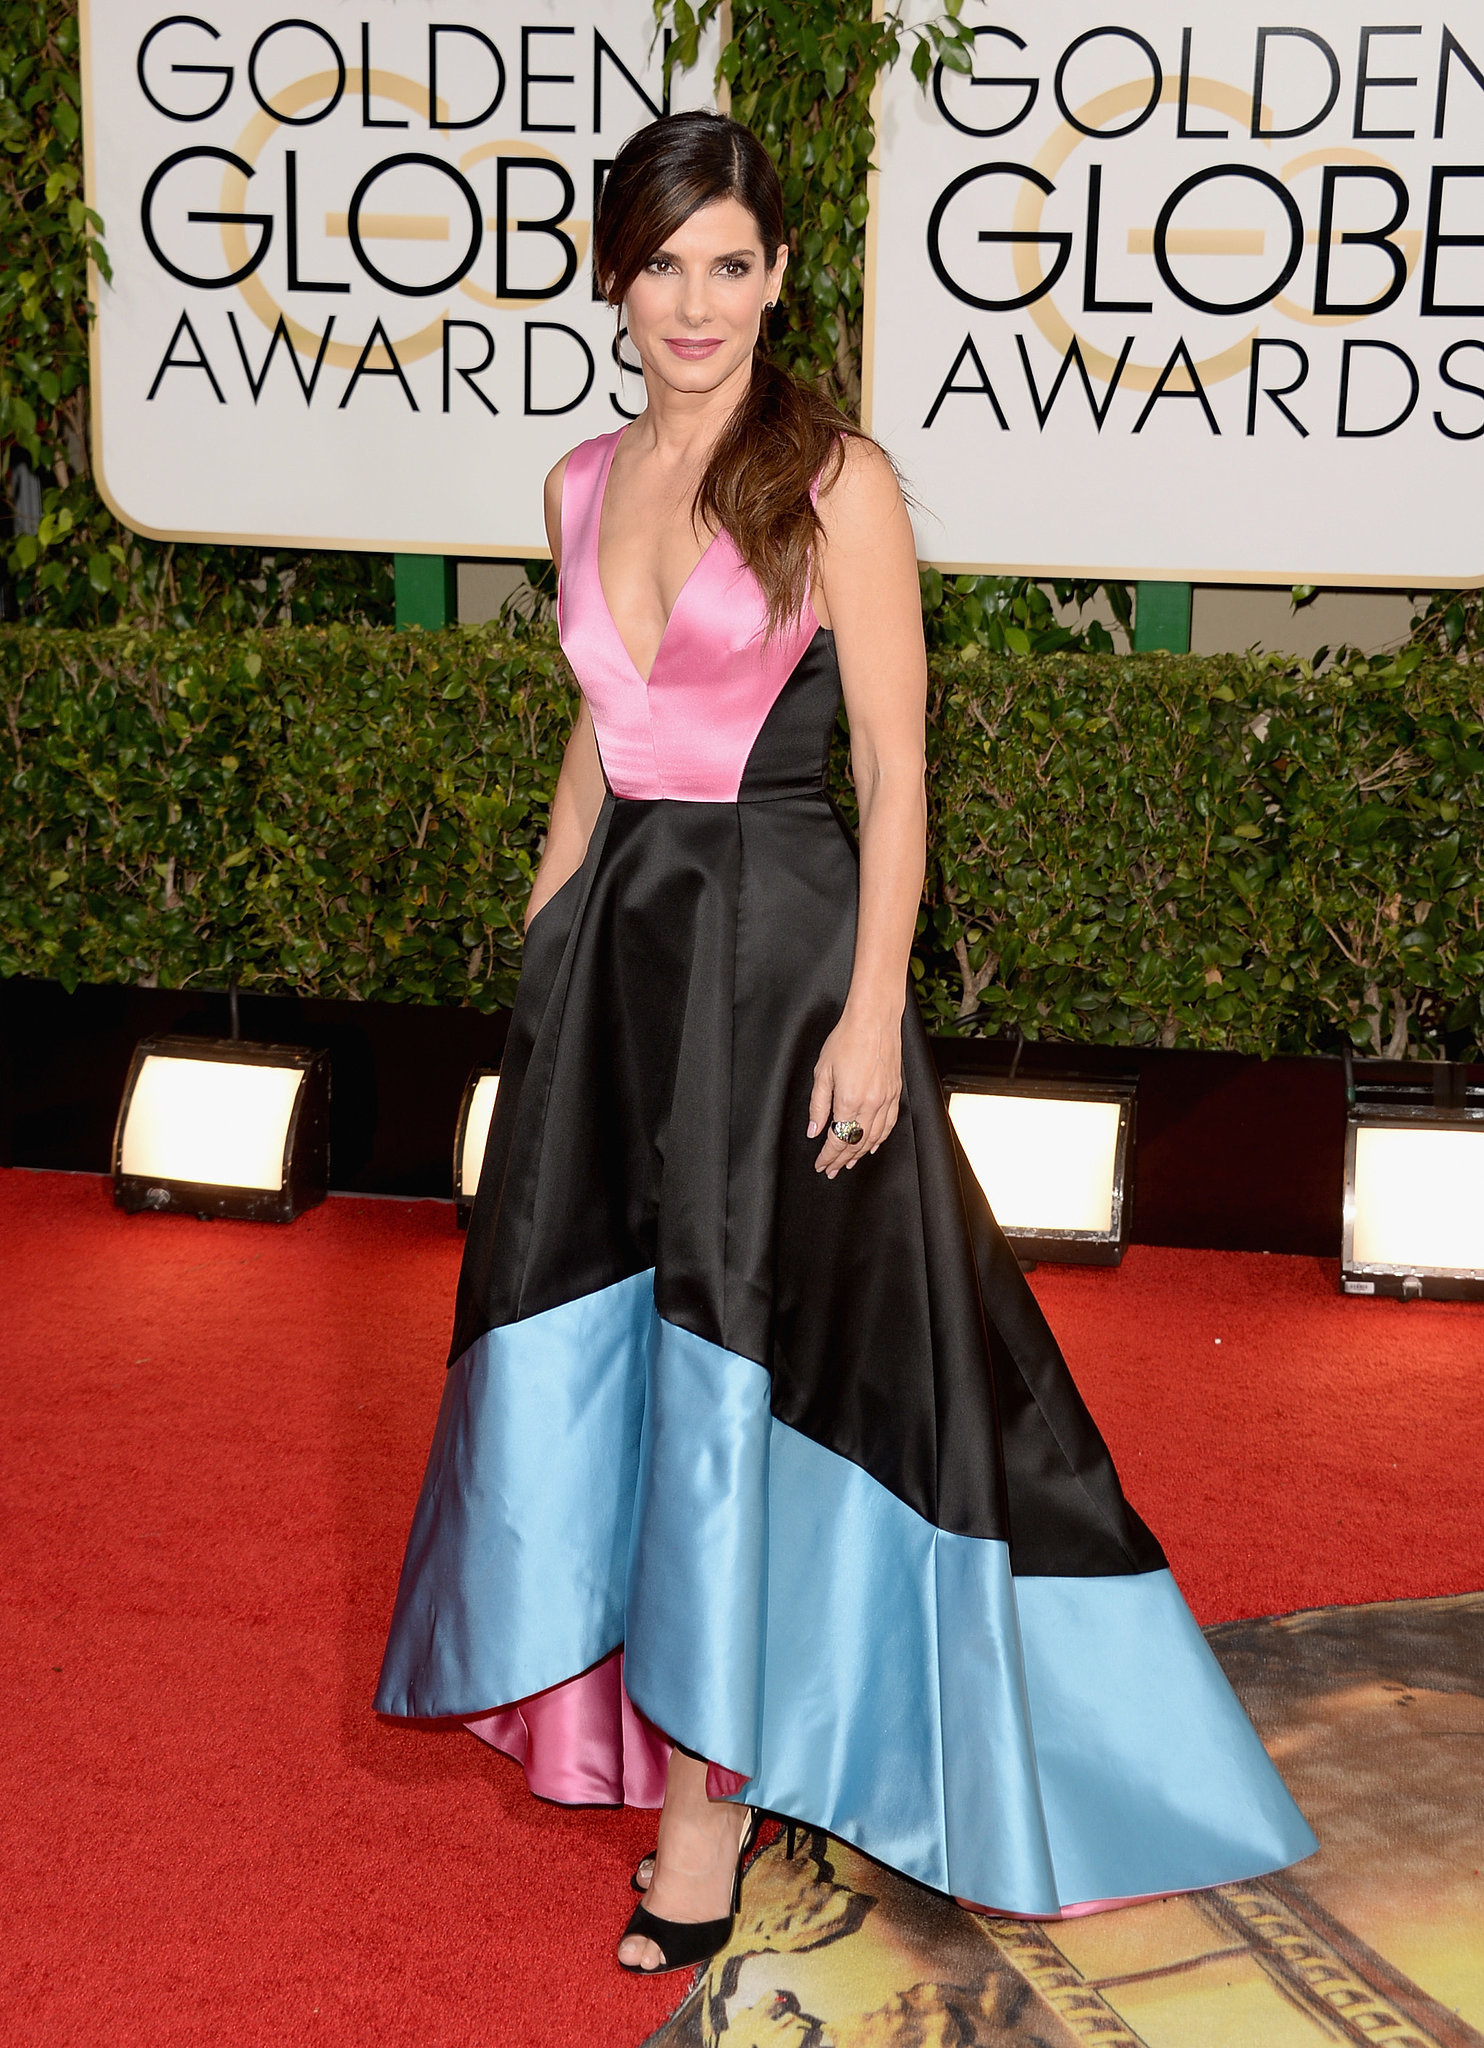 Actress in a Leading Role Nominee: Sandra Bullock